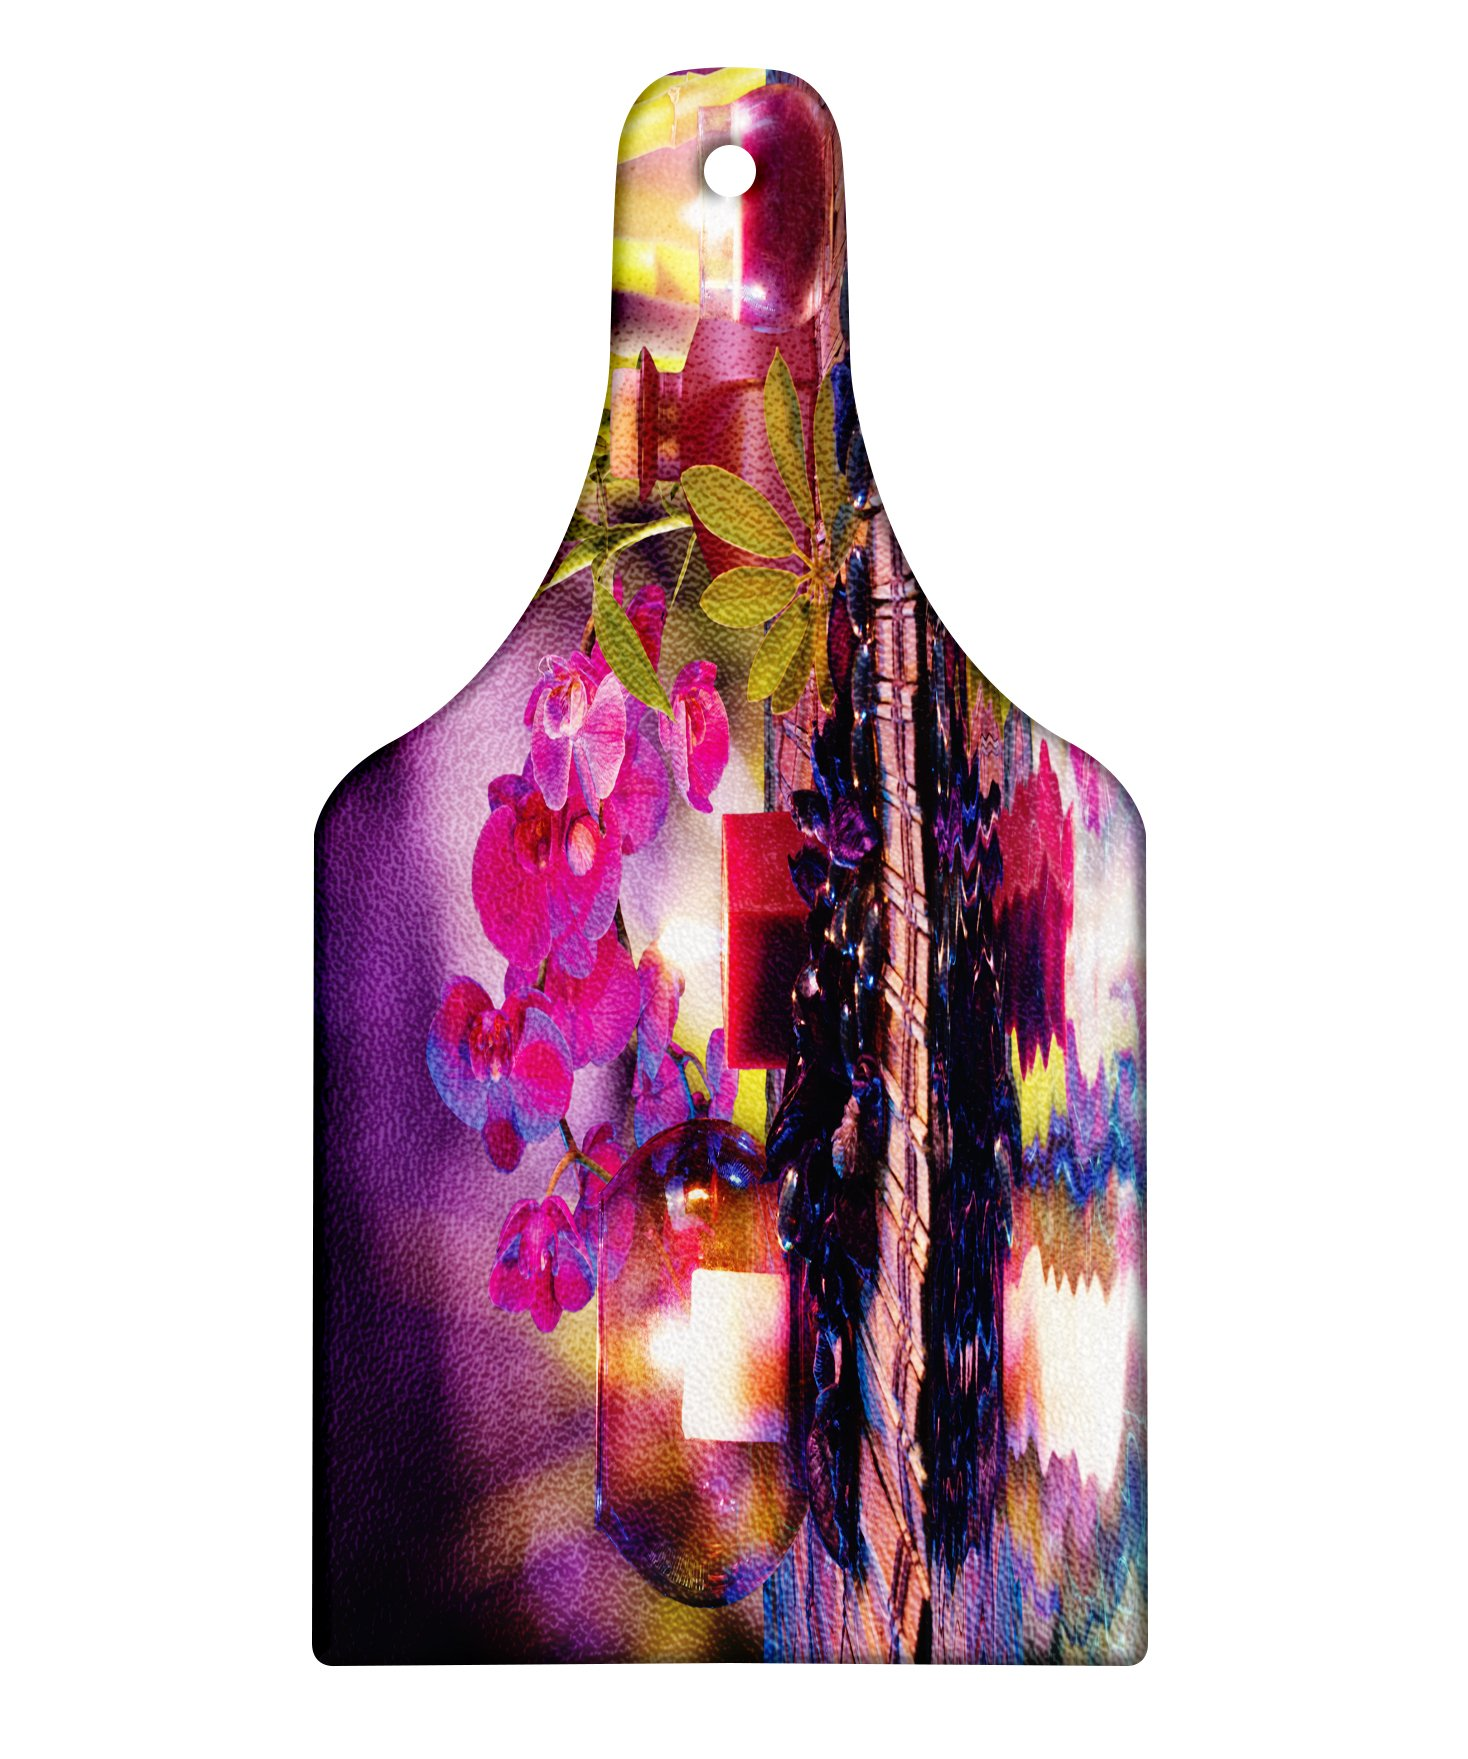 Lunarable Spa Cutting Board, Violet Composition Candles Oil Orchids Bamboo on Water Natural Leaves, Decorative Tempered Glass Cutting and Serving Board, Wine Bottle Shape, Violet Fuchsia Lime Green